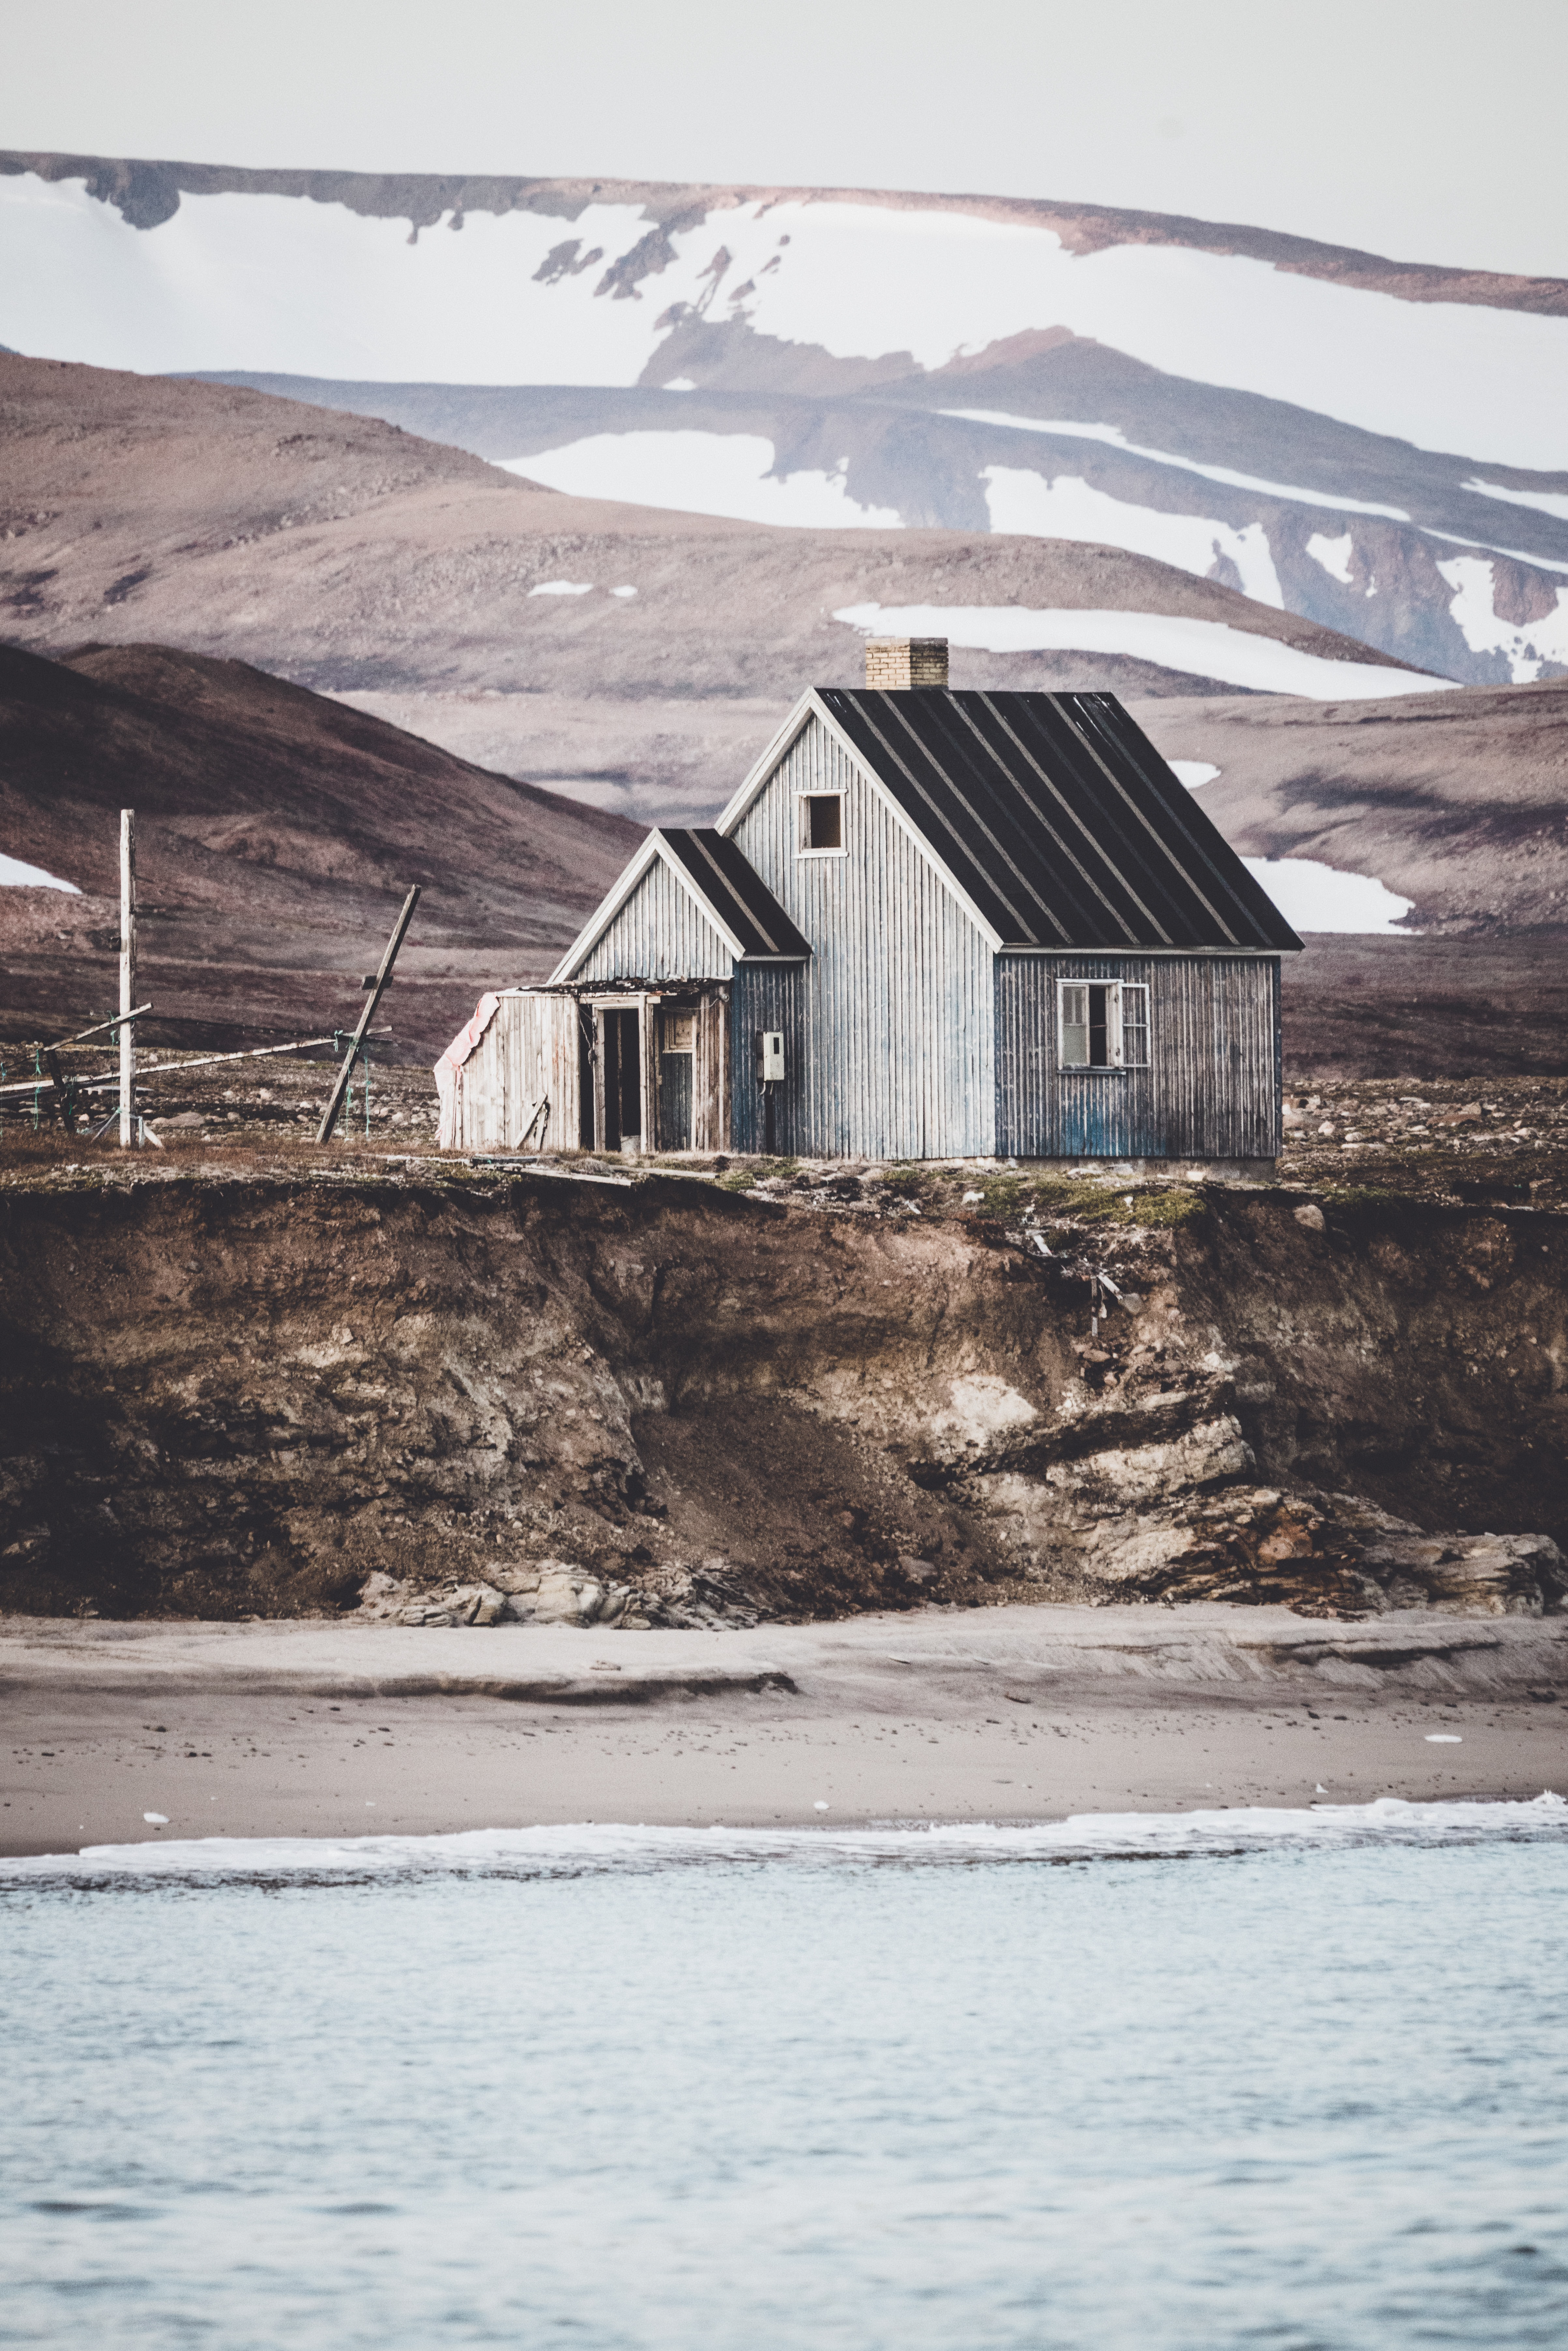 gray wooden house on land near body of water